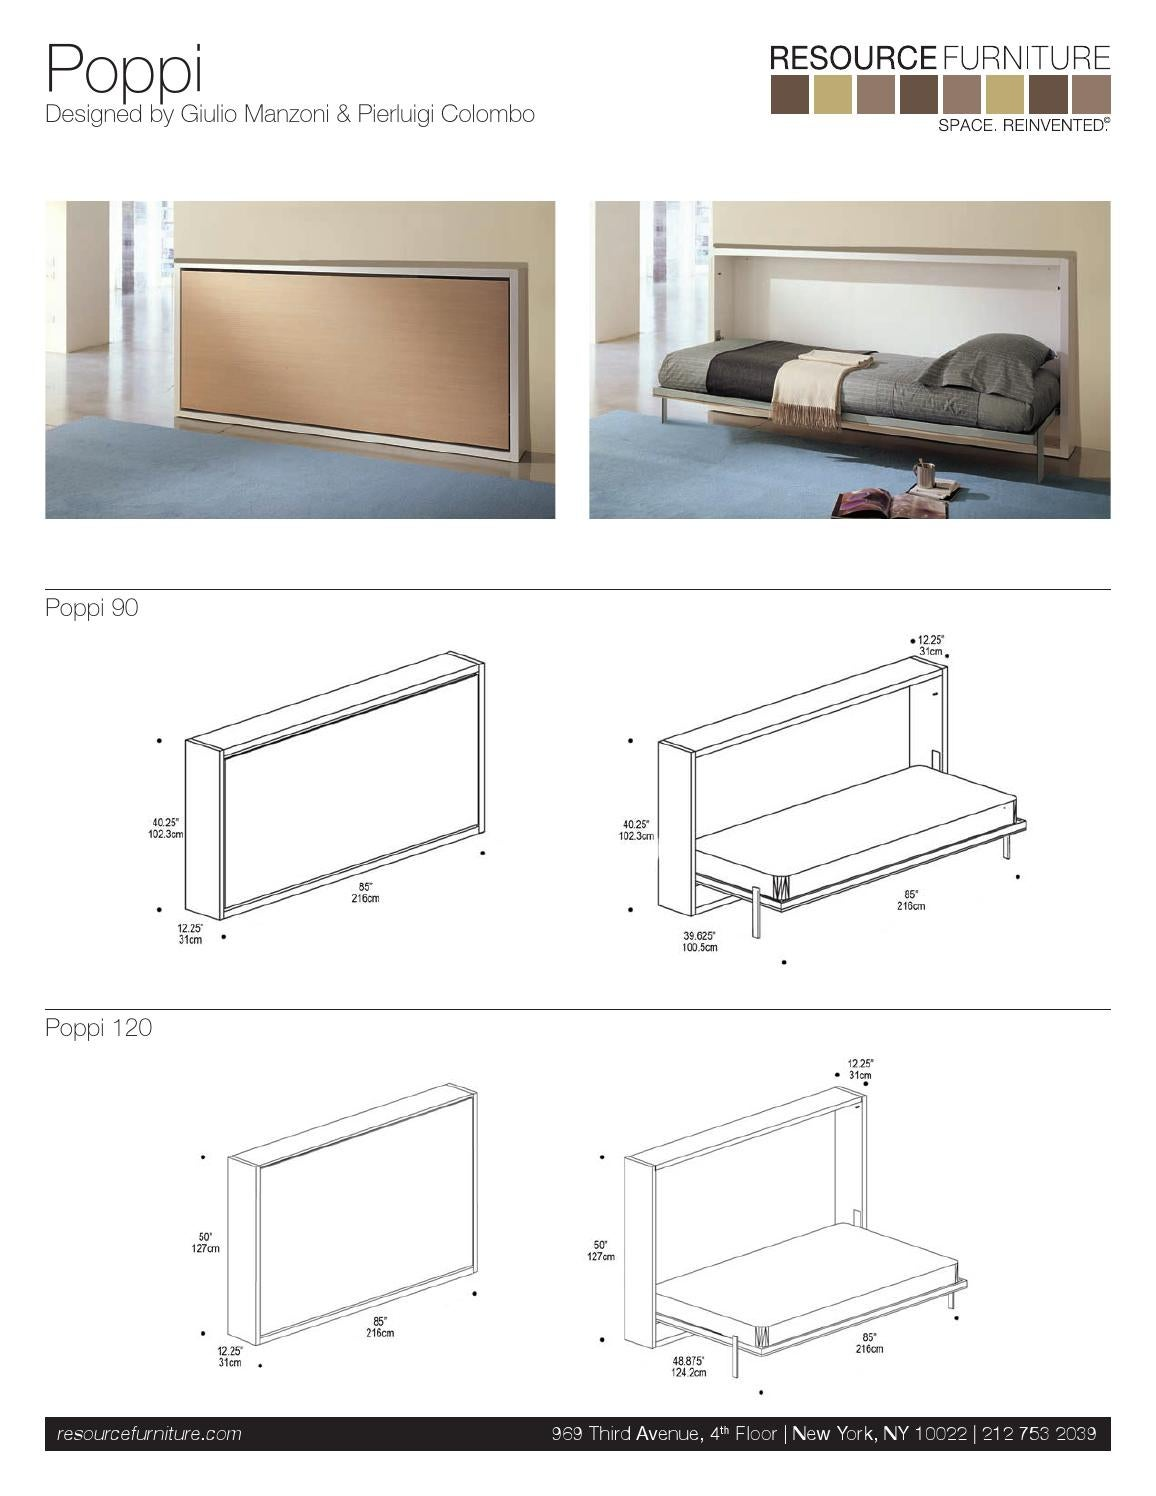 Poppi specs and dimensions by resource furniture issuu for 120 east 16th street 4th floor new york ny 10003